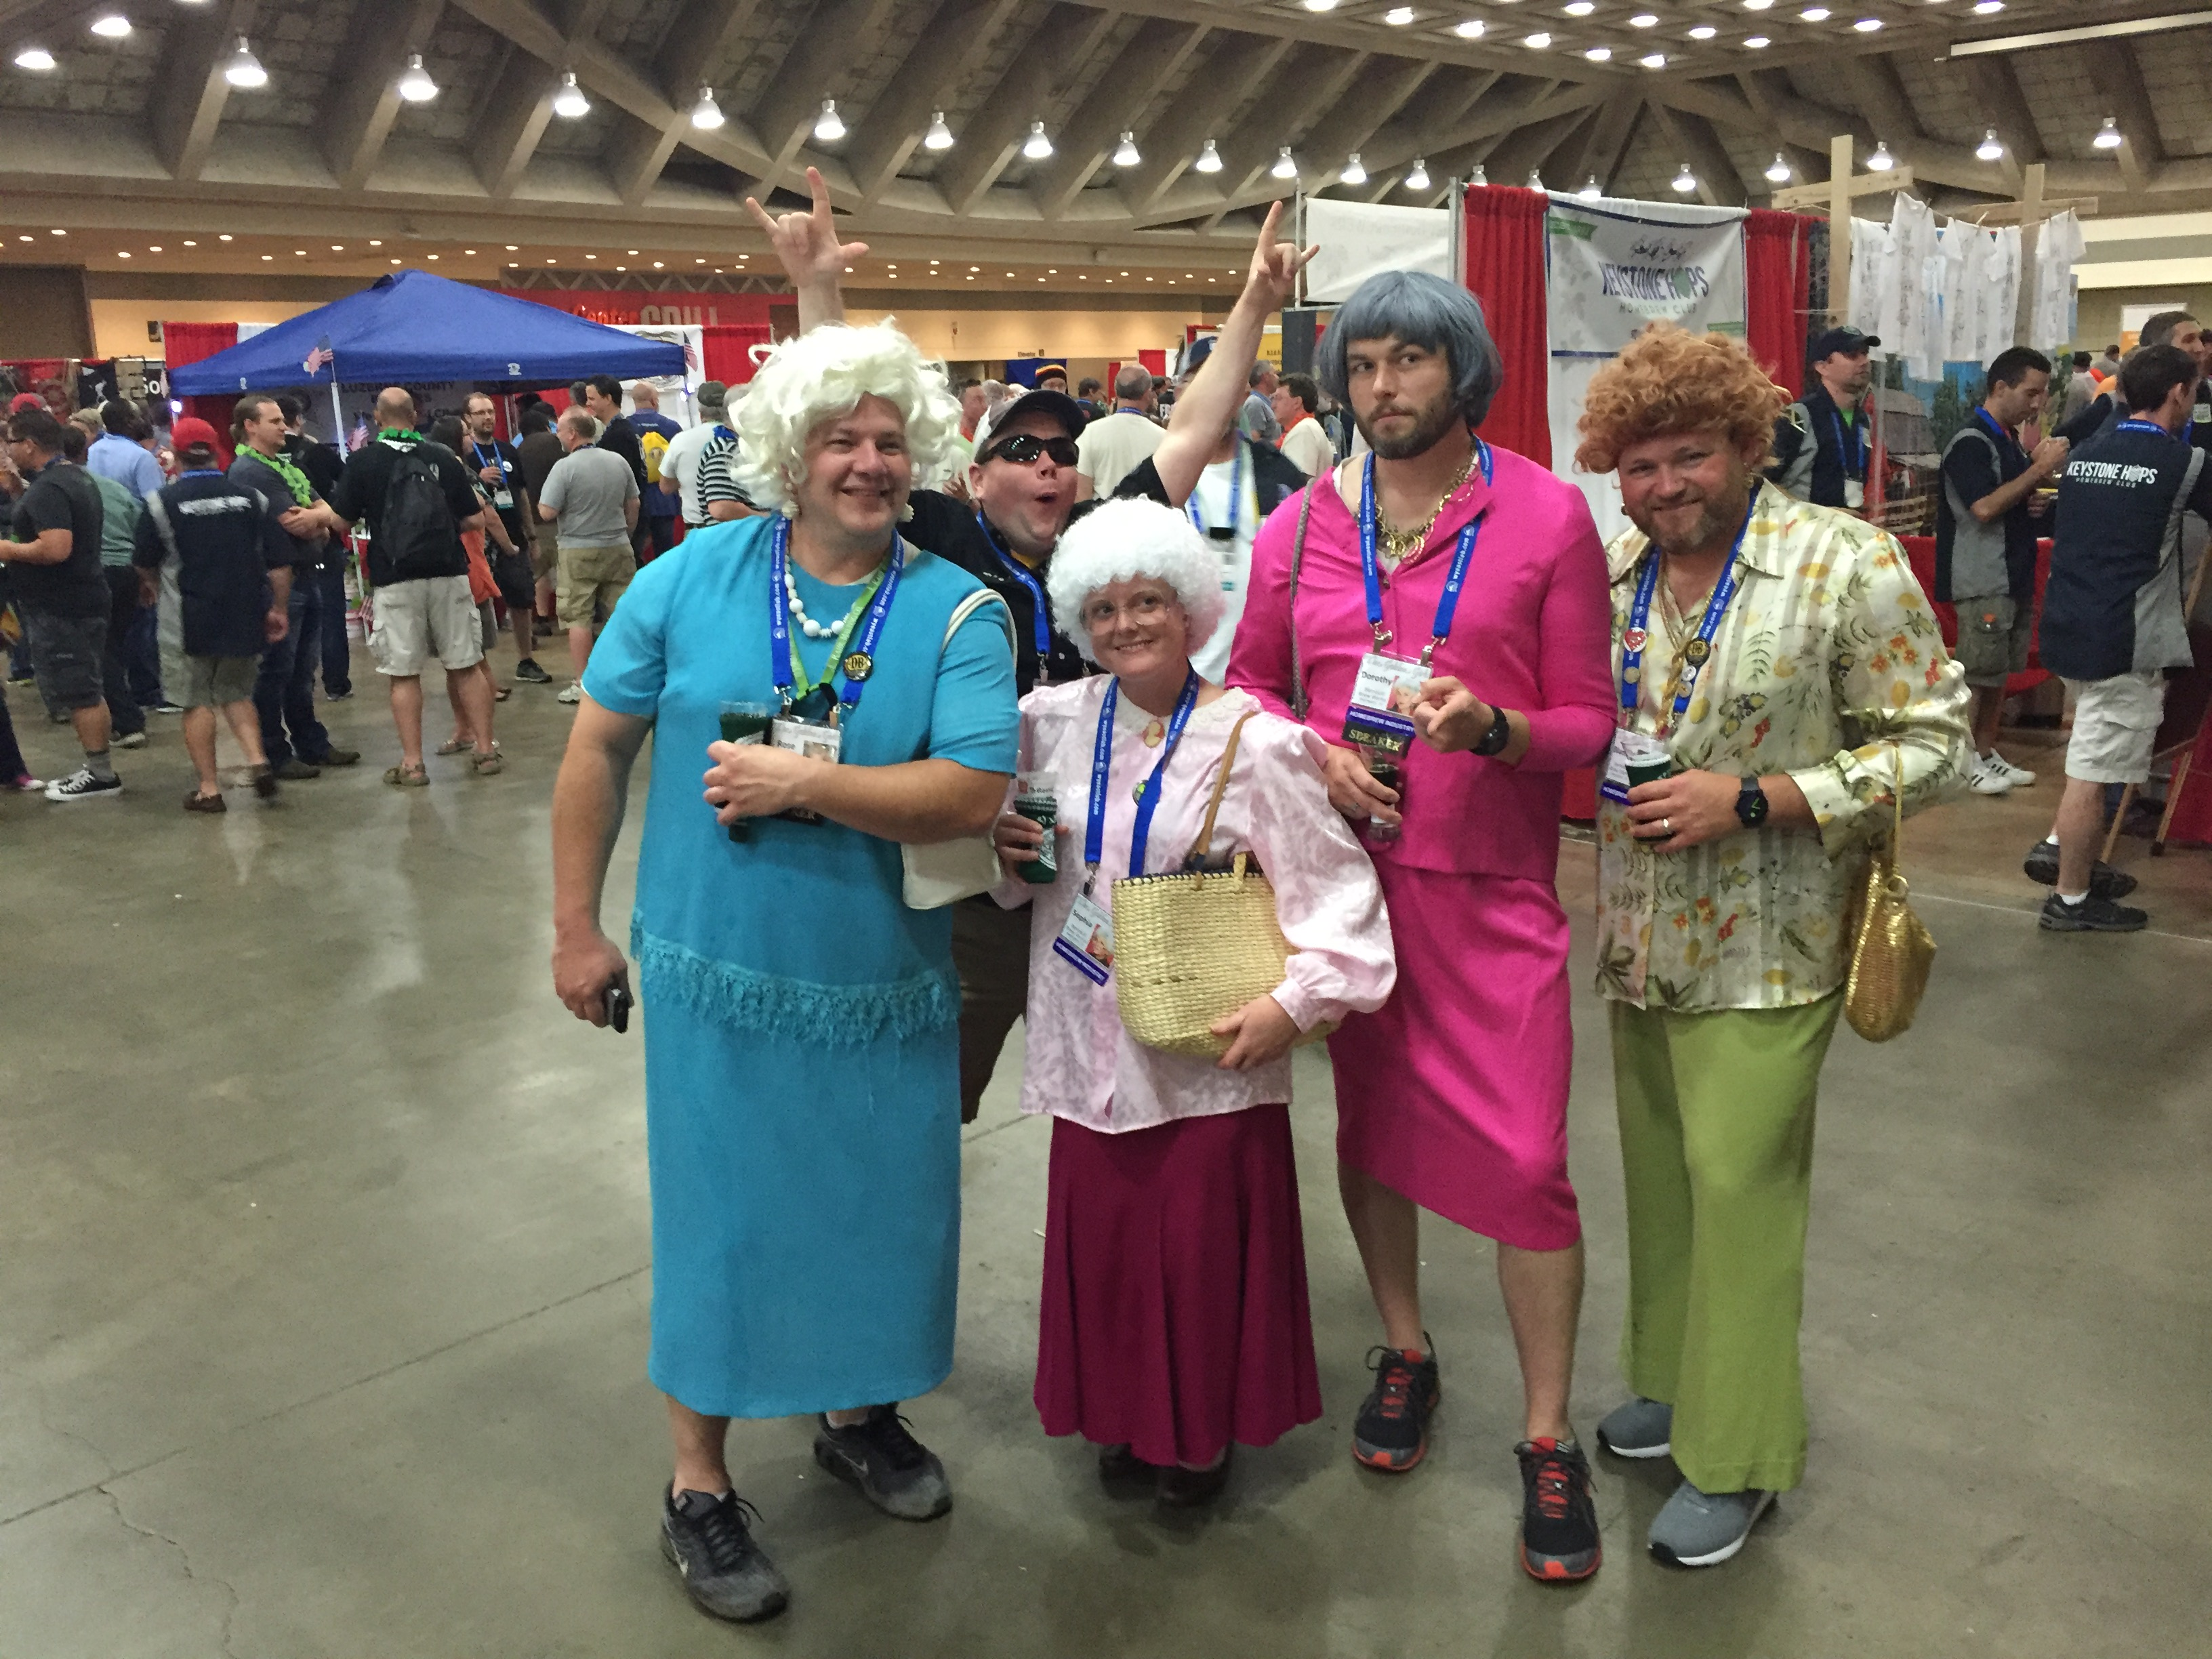 The Golden Girls making a rare appearance at Homebrew Con 2016 Club Night